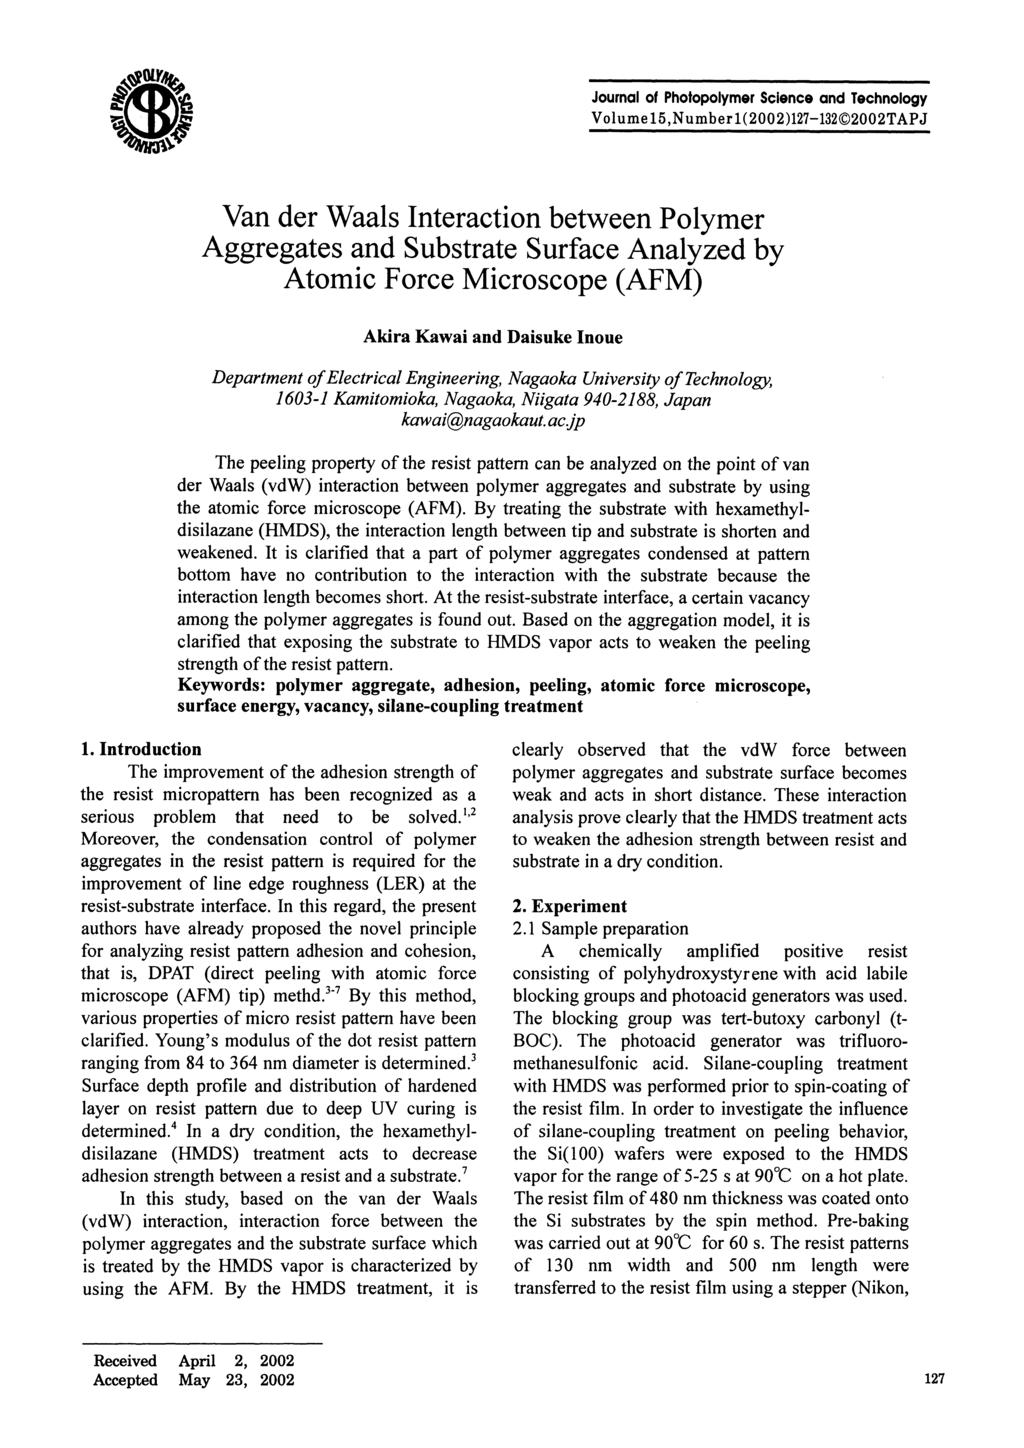 Journal of Photopolymer Science and Technology Volume 15,Number 1(2002)127-132 2002TAPJ L Van der Waals Interaction between Polymer Aggregates and Substrate Surface Analyzed by Atomic Force